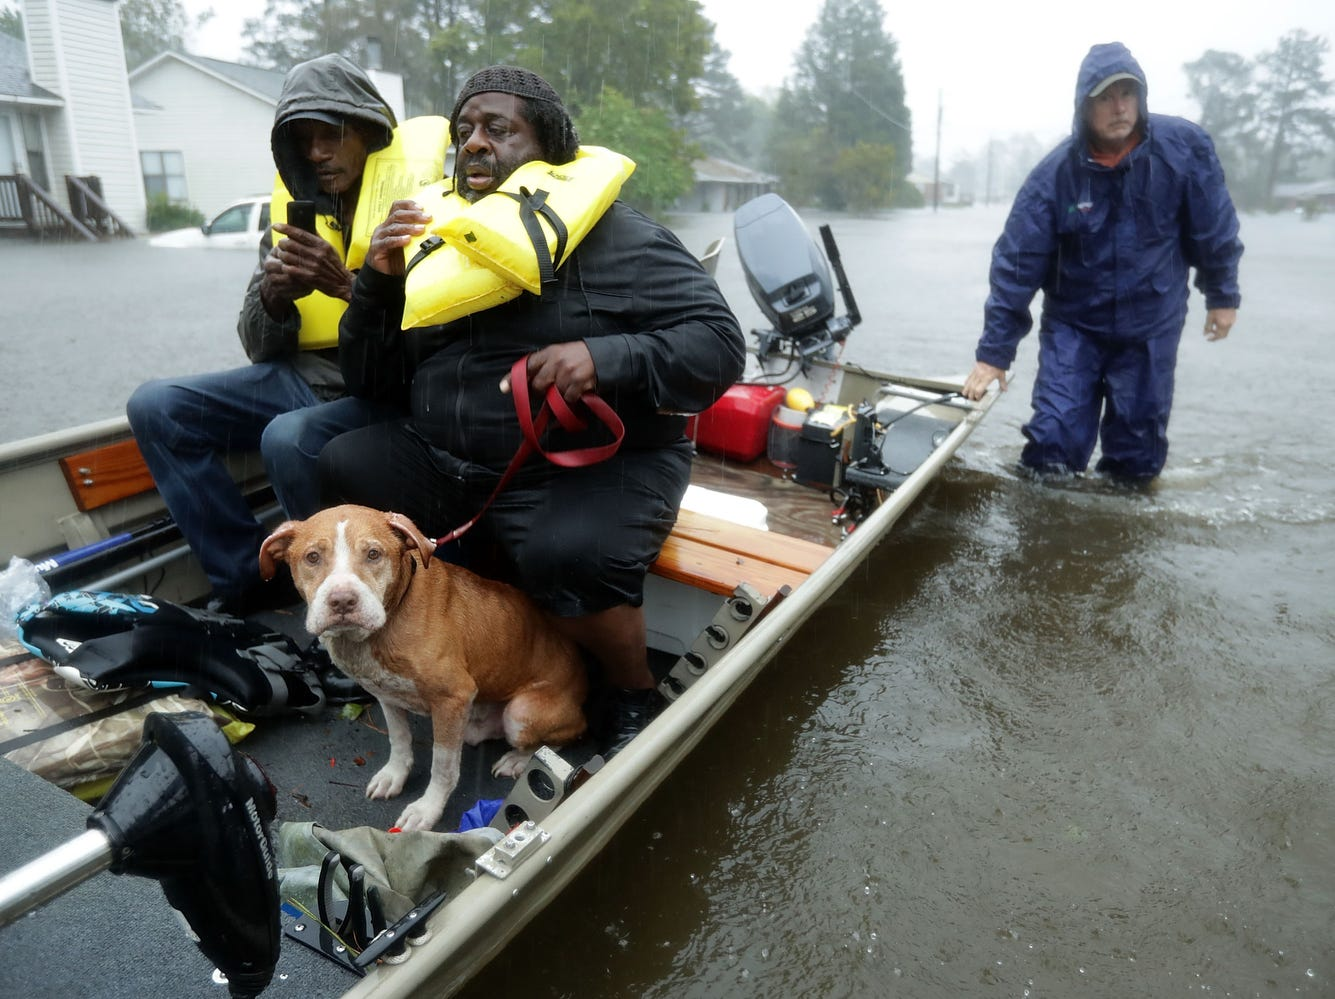 Volunteers from all over North Carolina help rescue residents and their pets from their flooded homes during  Florence Sept. 14, 2018 in New Bern, N.C. Hurricane Florence made landfall in North Carolina as a Category 1 storm and flooding from the heavy rain is forcing hundreds of people to call for emergency rescues in the area around New Bern, which sits at the confluence of the Nuese and Trent rivers.